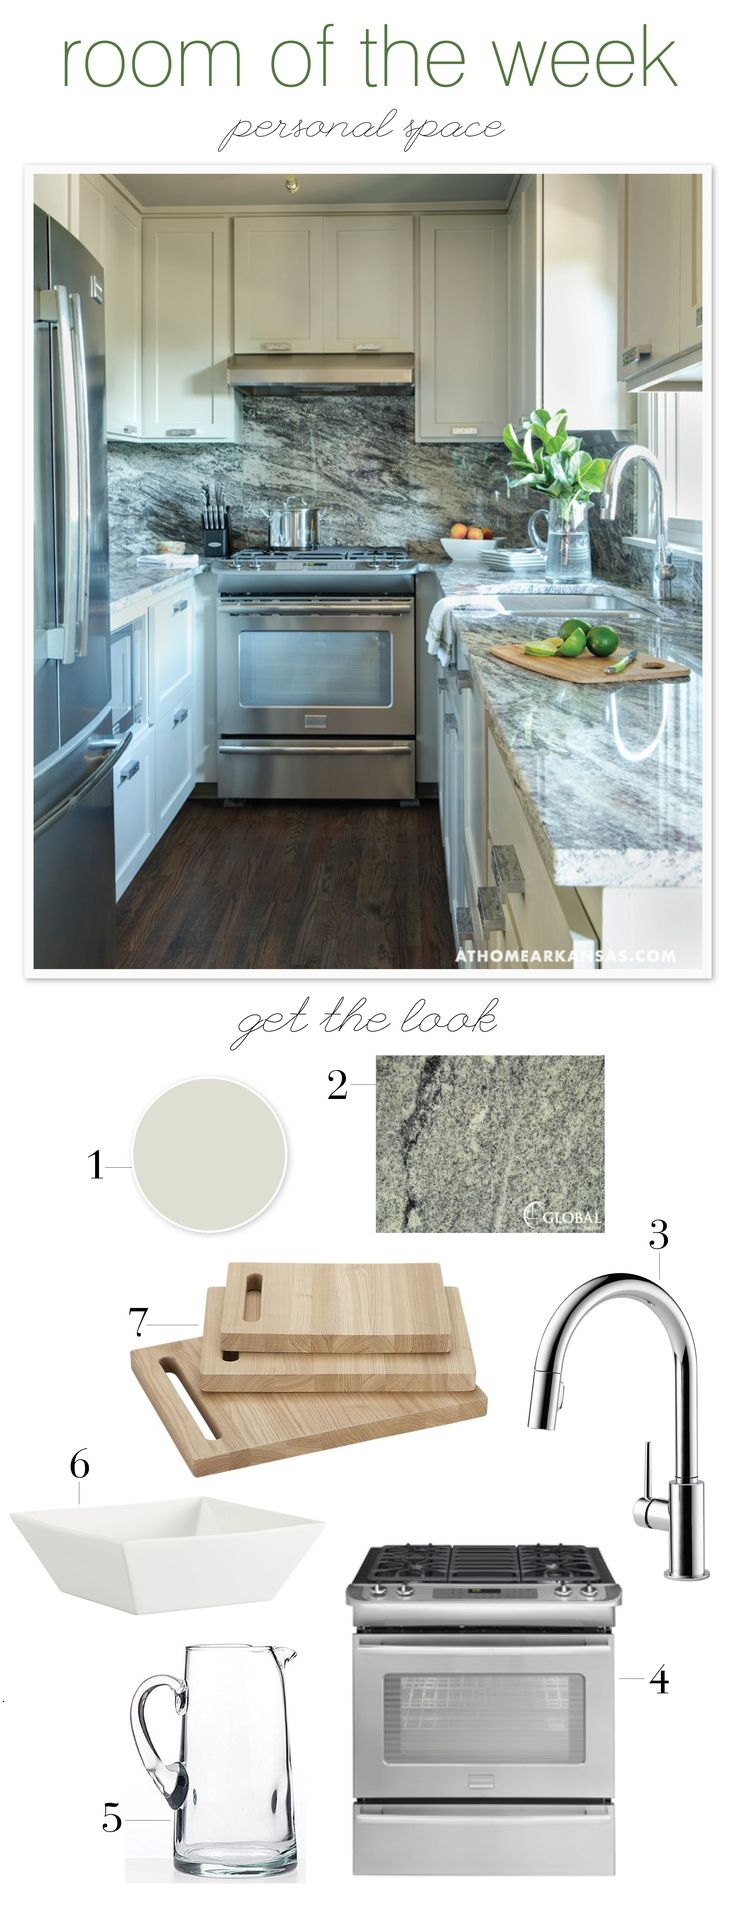 41 best Room of the Week images on Pinterest | Arkansas, At home ...